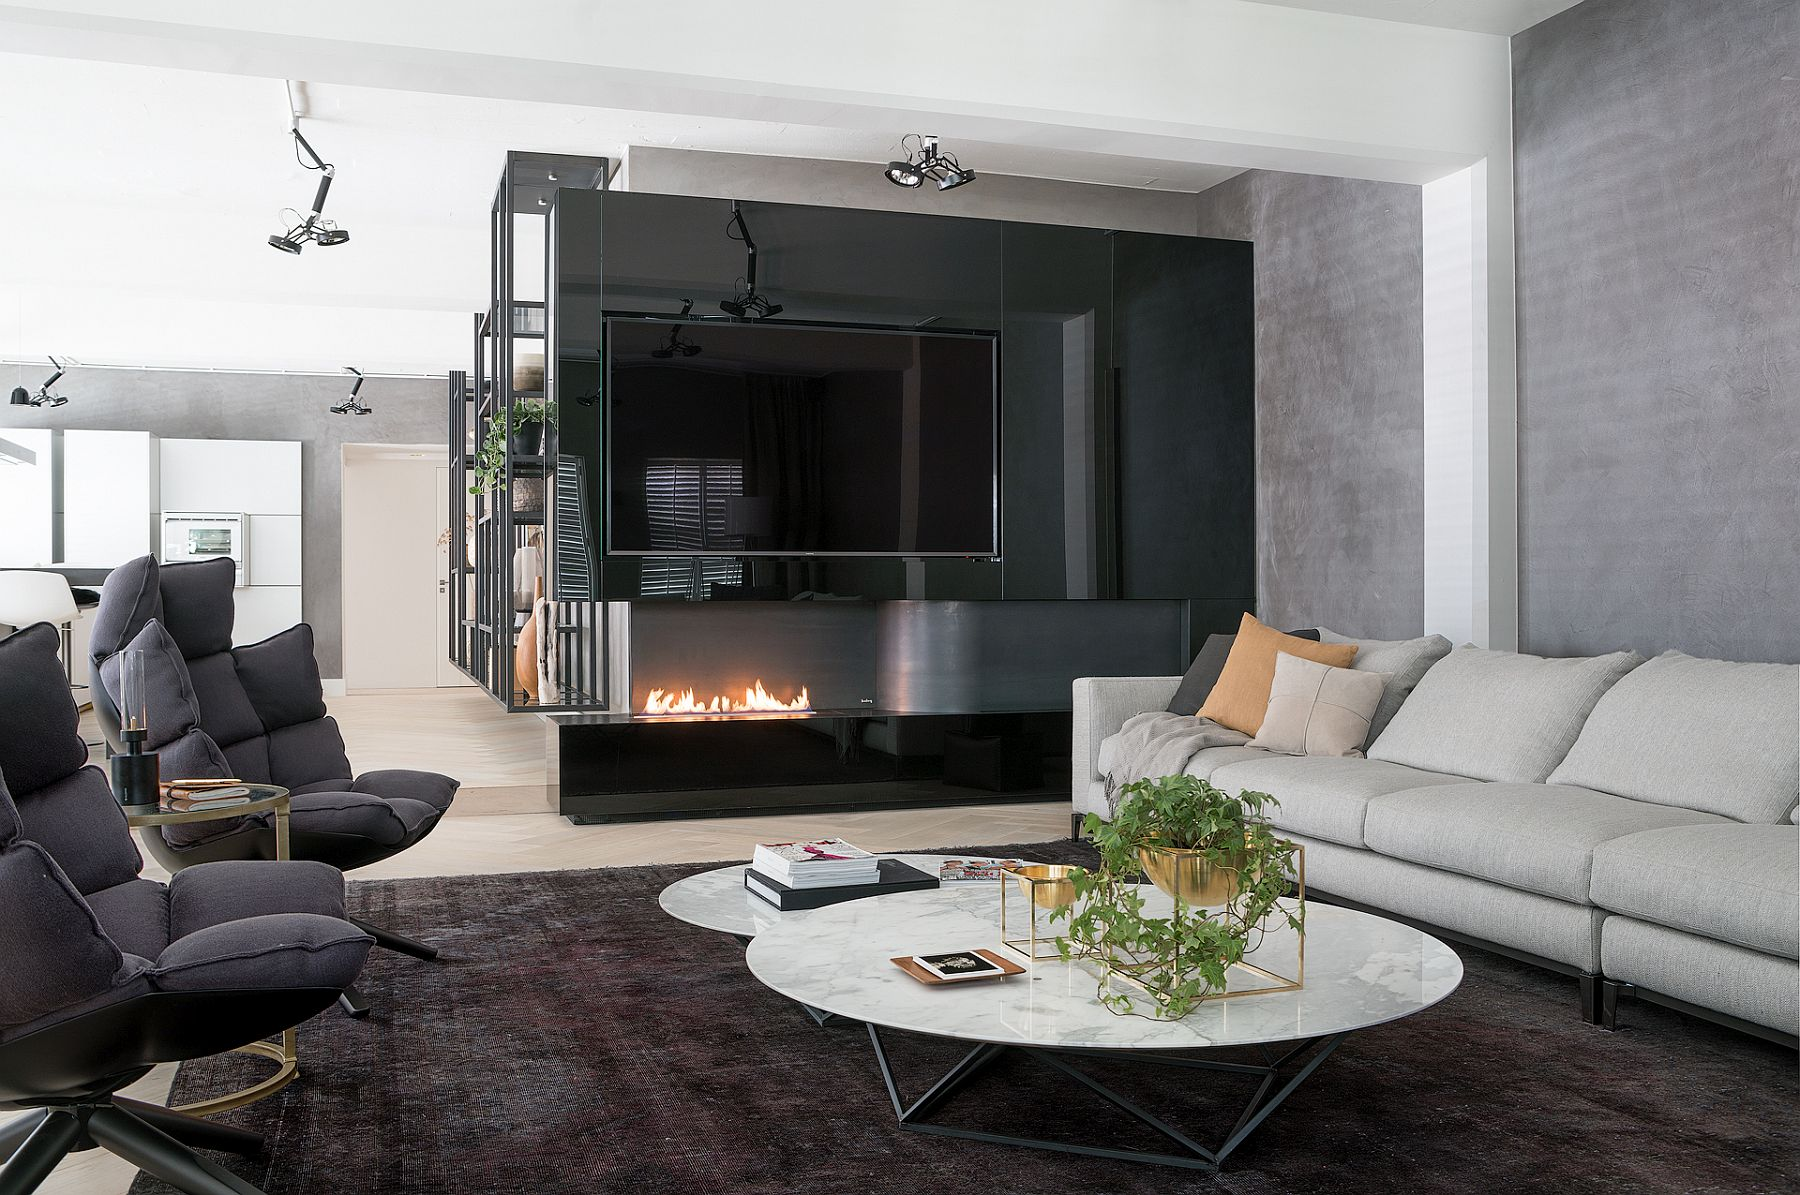 Stunning use of fireplace in the living room with 80-inch TV above it